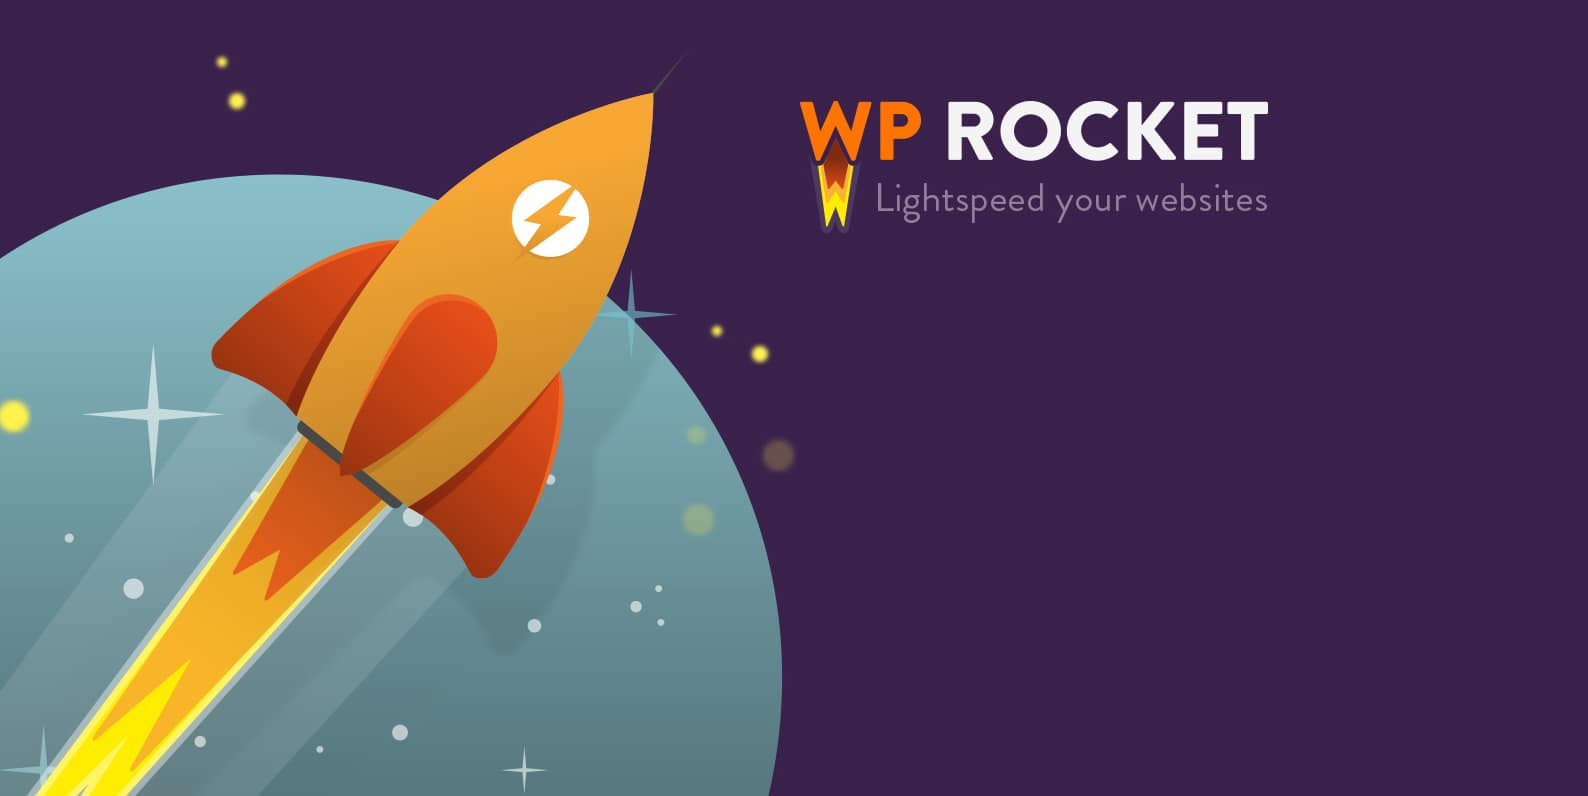 WP Rocket is help to boost up website loading speed.